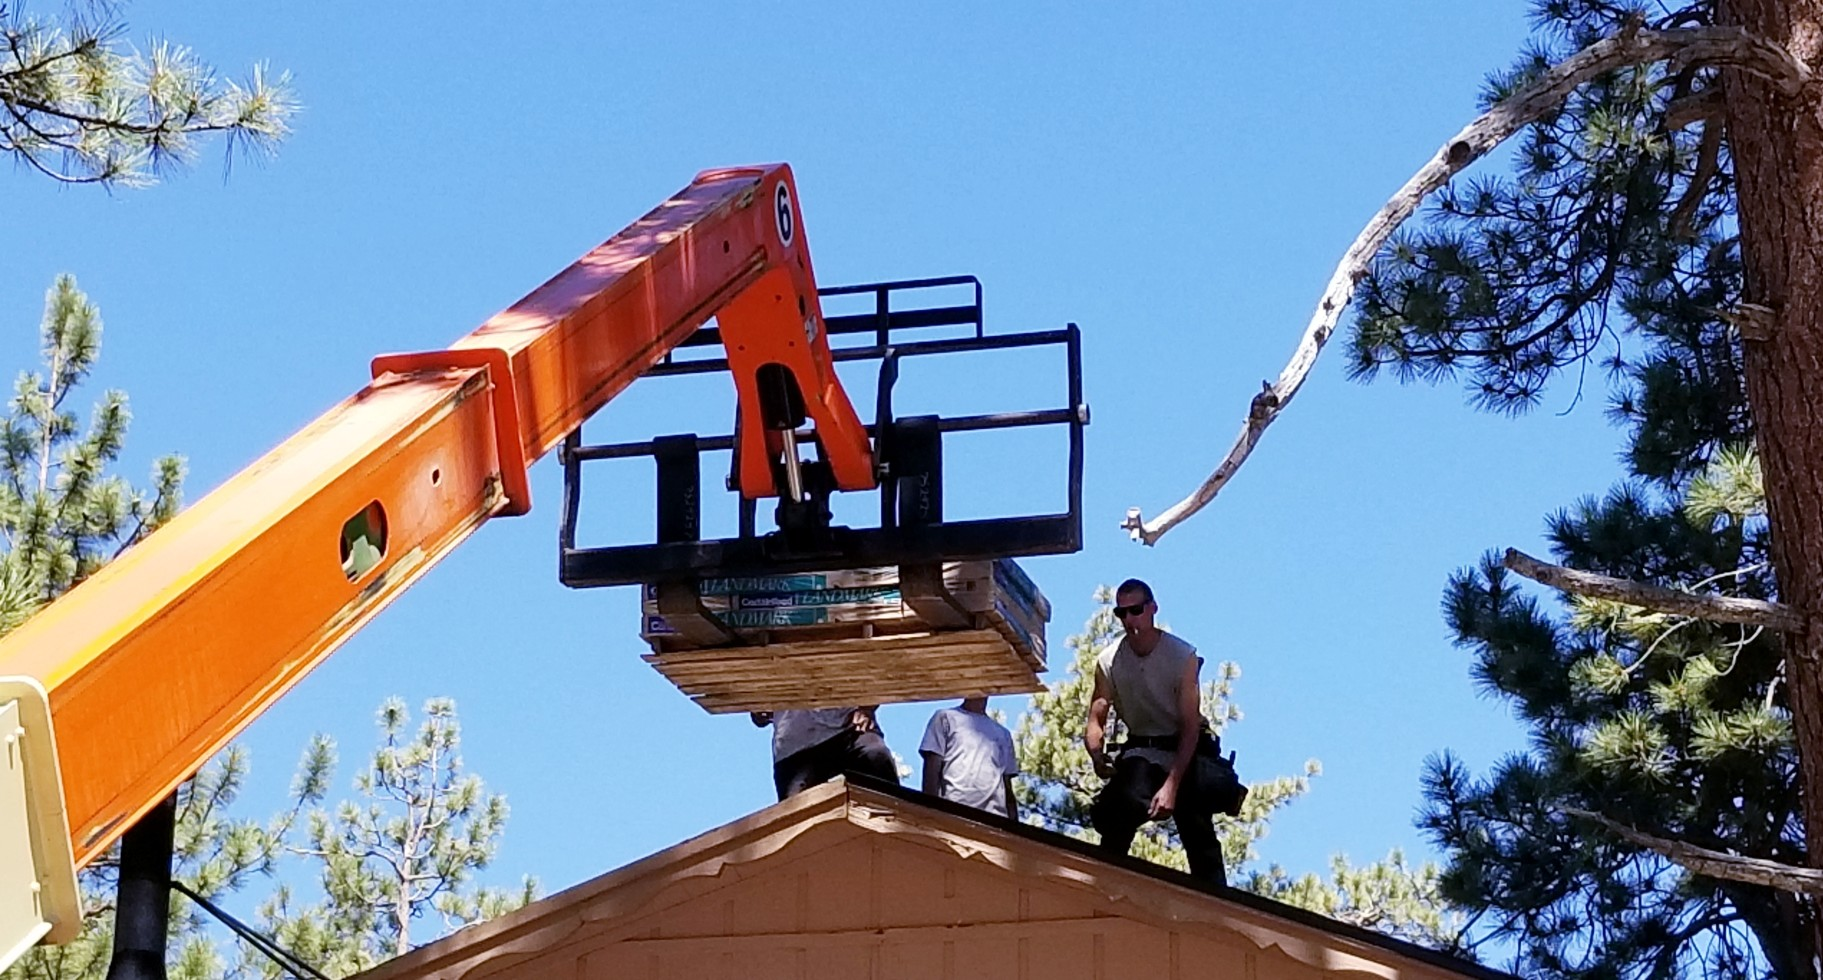 roofing-a-professional-roofer-stands.jpg